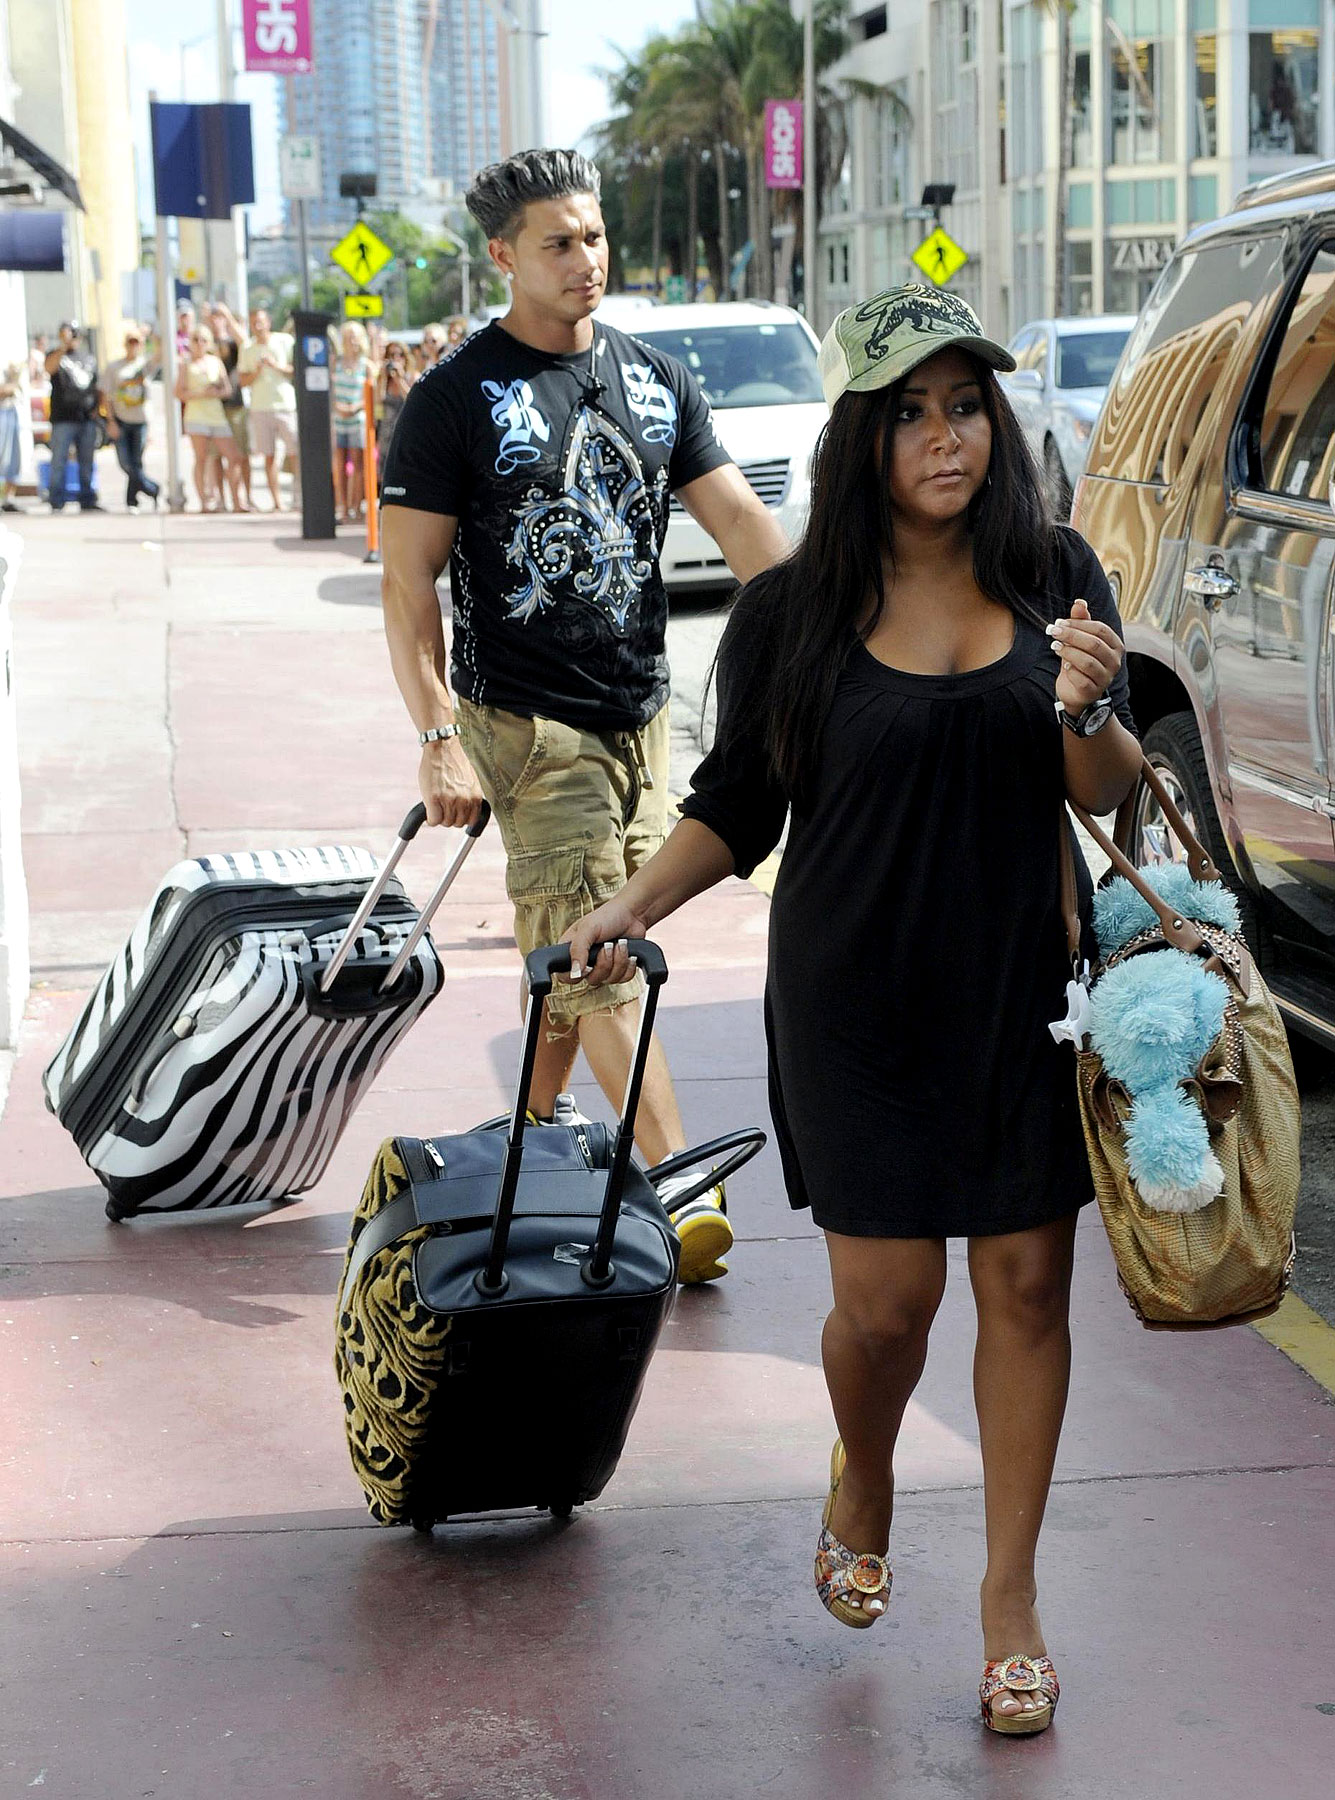 'Jersey Shore' Cast Ships Out Of Miami (PHOTOS)